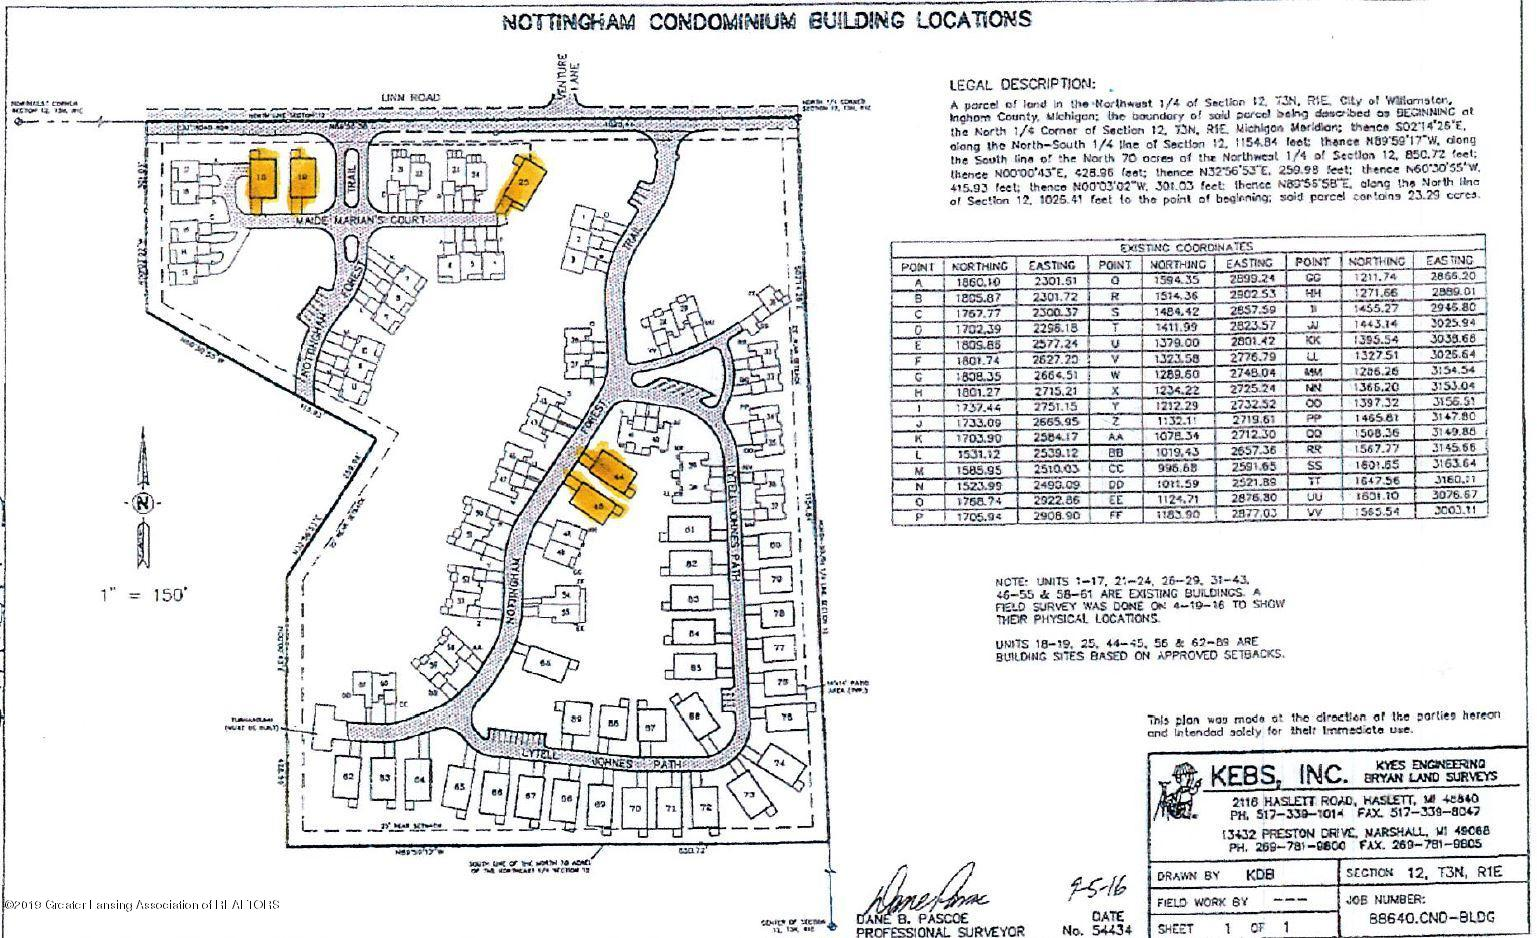 1112 Maide Marian'S - Site Plan - 1